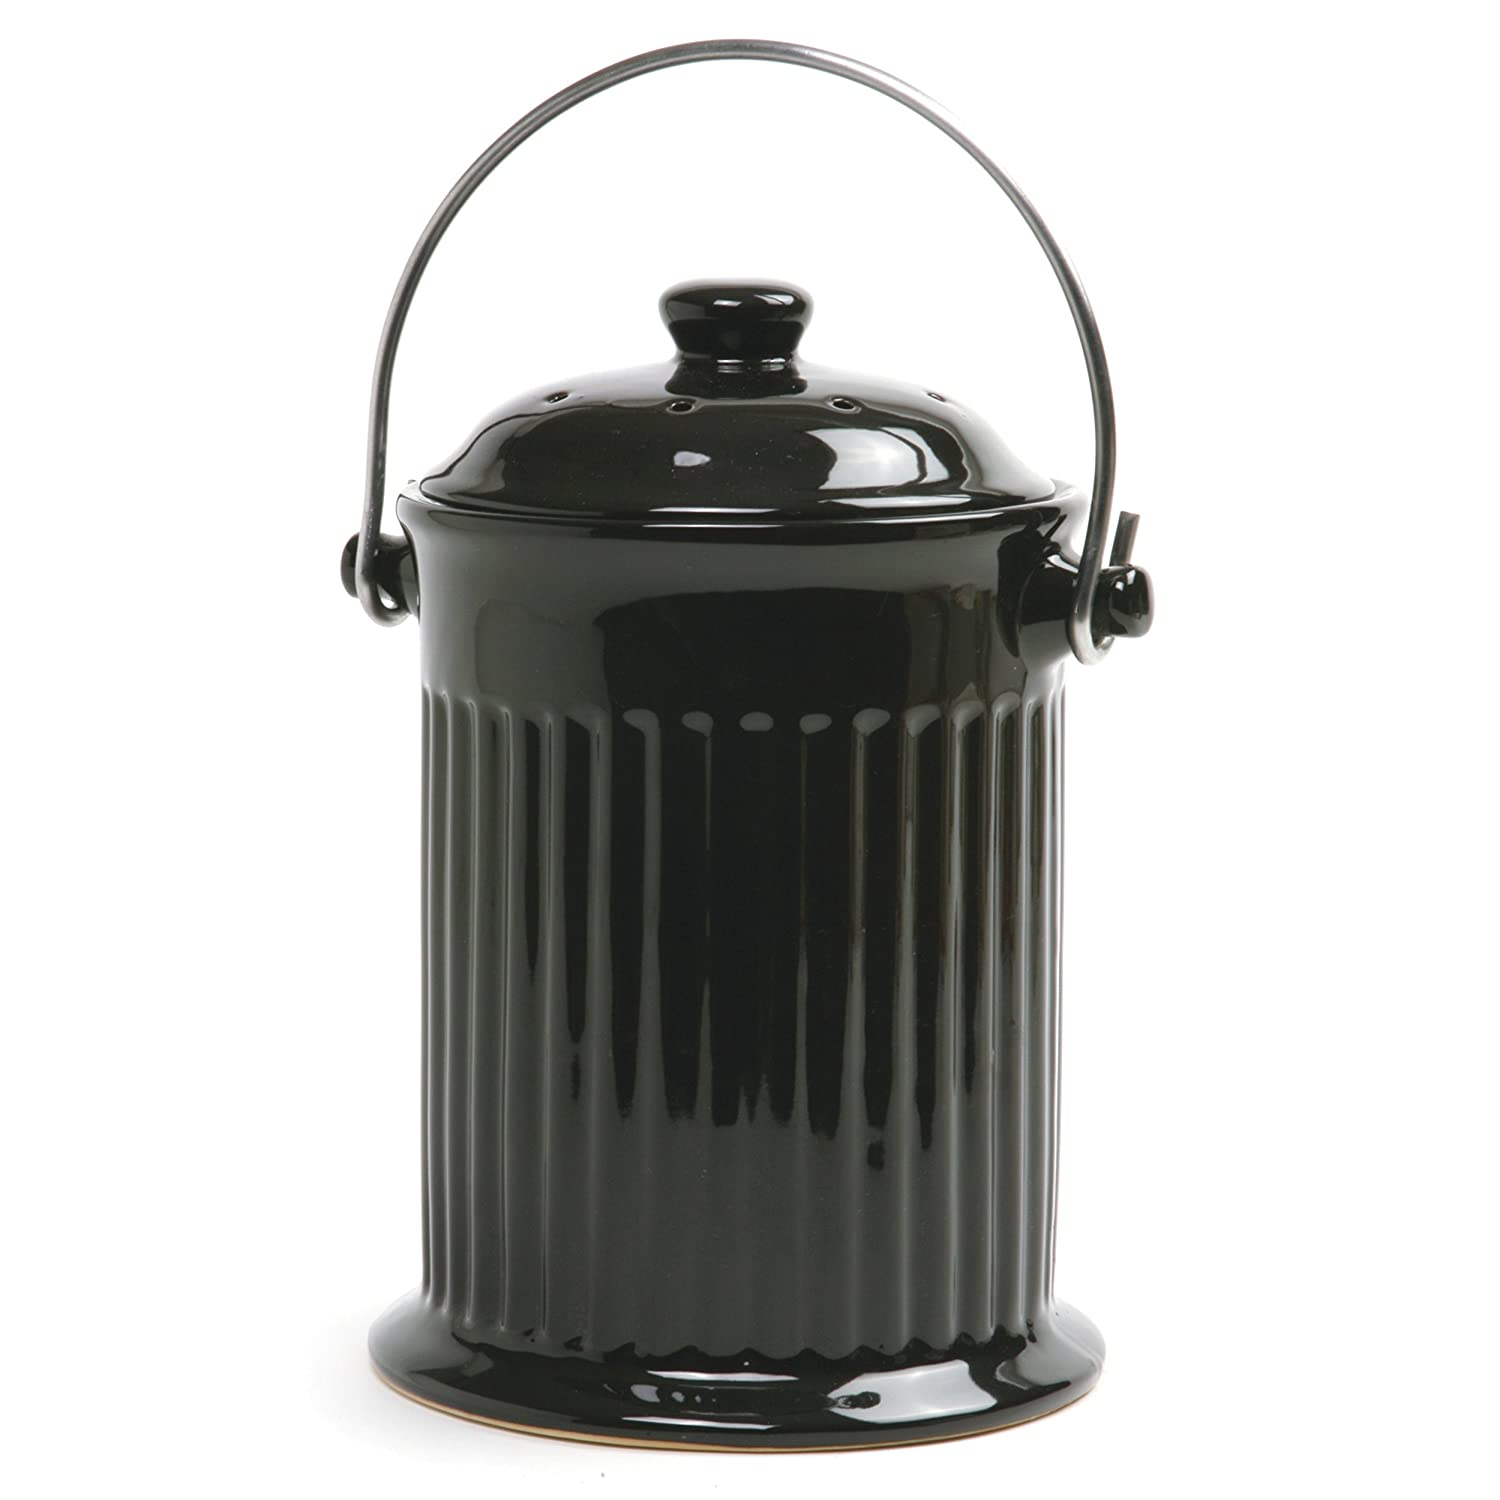 Amazon.com: Norpro 1 Gallon Ceramic Compost Keeper, Black: Compost Bins:  Kitchen U0026 Dining